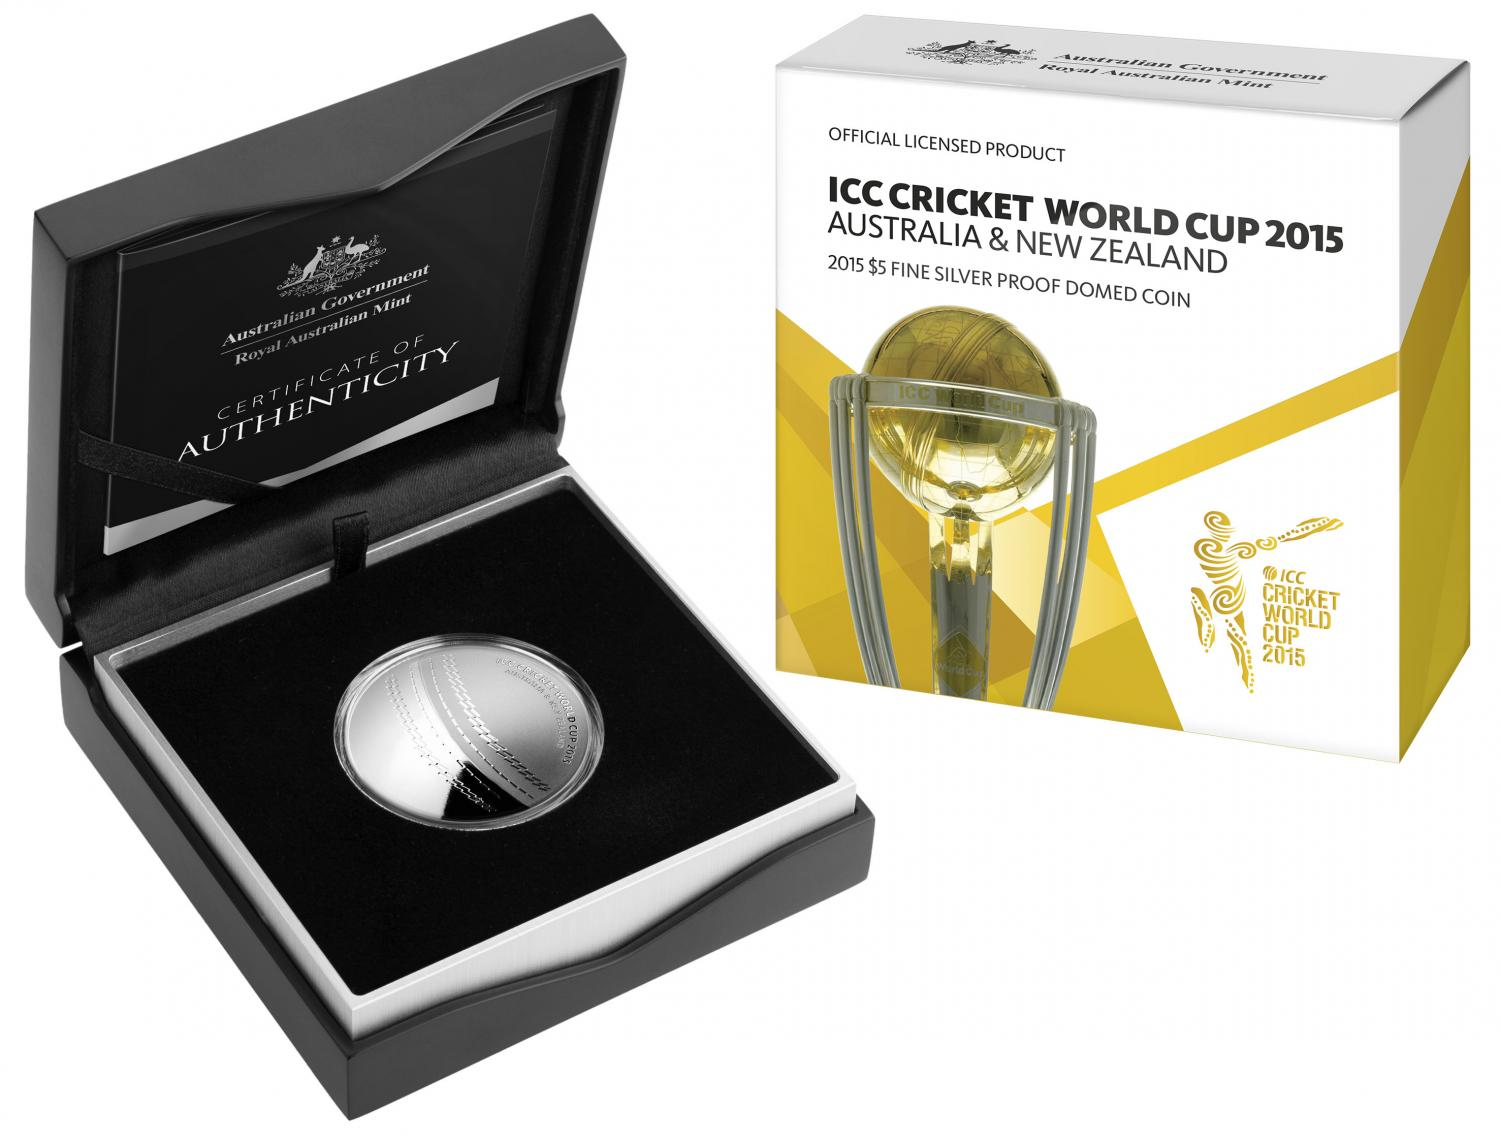 Thumbnail for 2015 ICC Cricket World Cup $5.00 Silver 1oz Proof Domed Coin